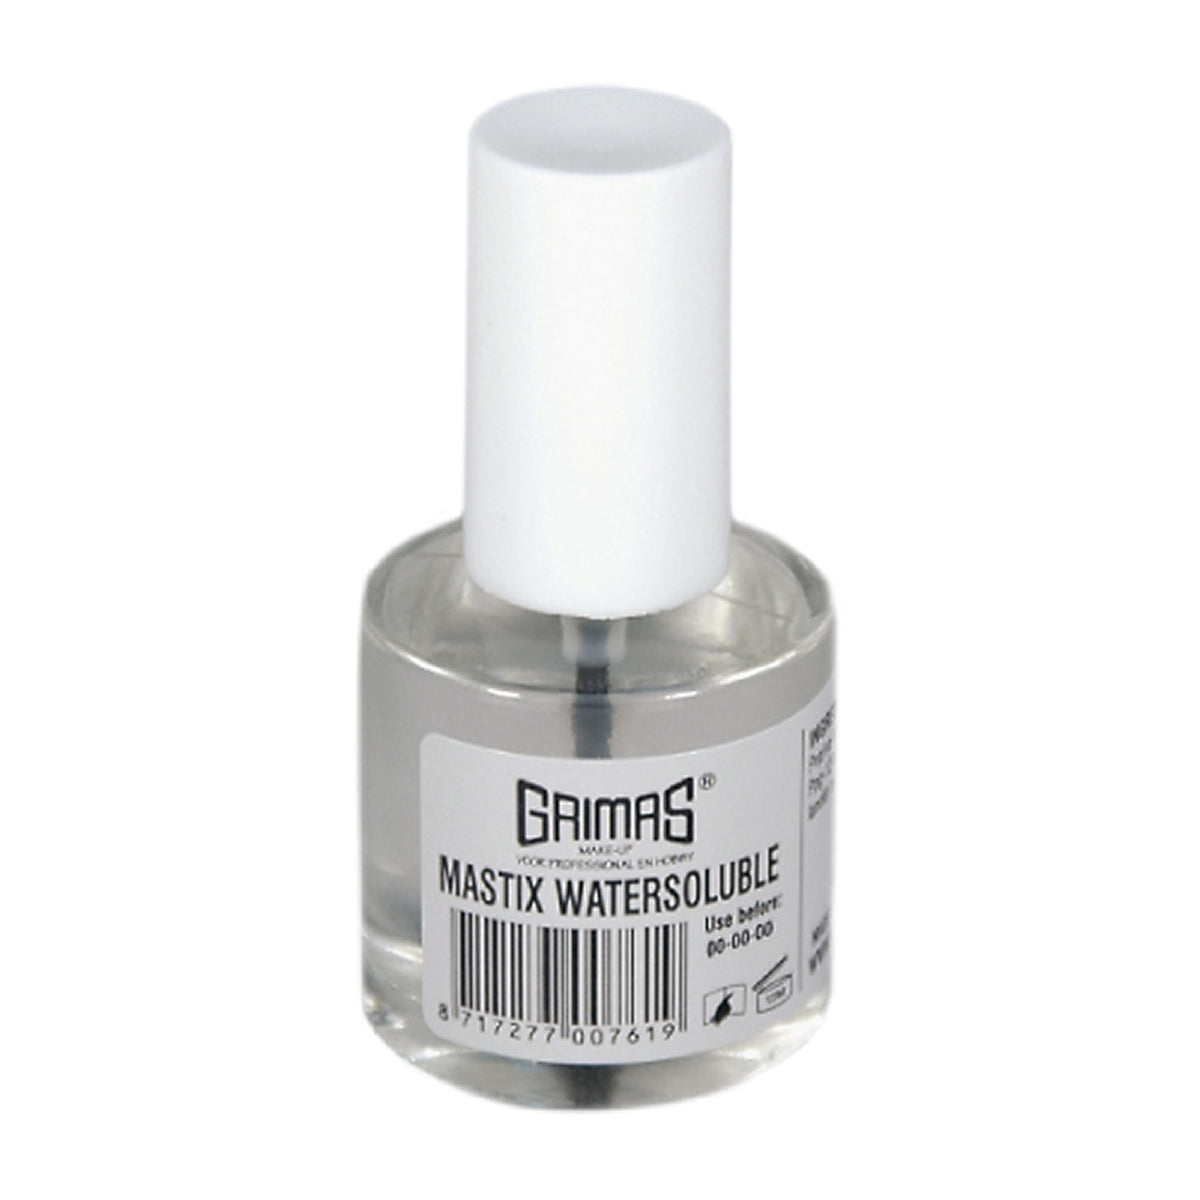 Grimas Mastix Watersoluble Adhesive - Red Carpet FX - Professional Makeup